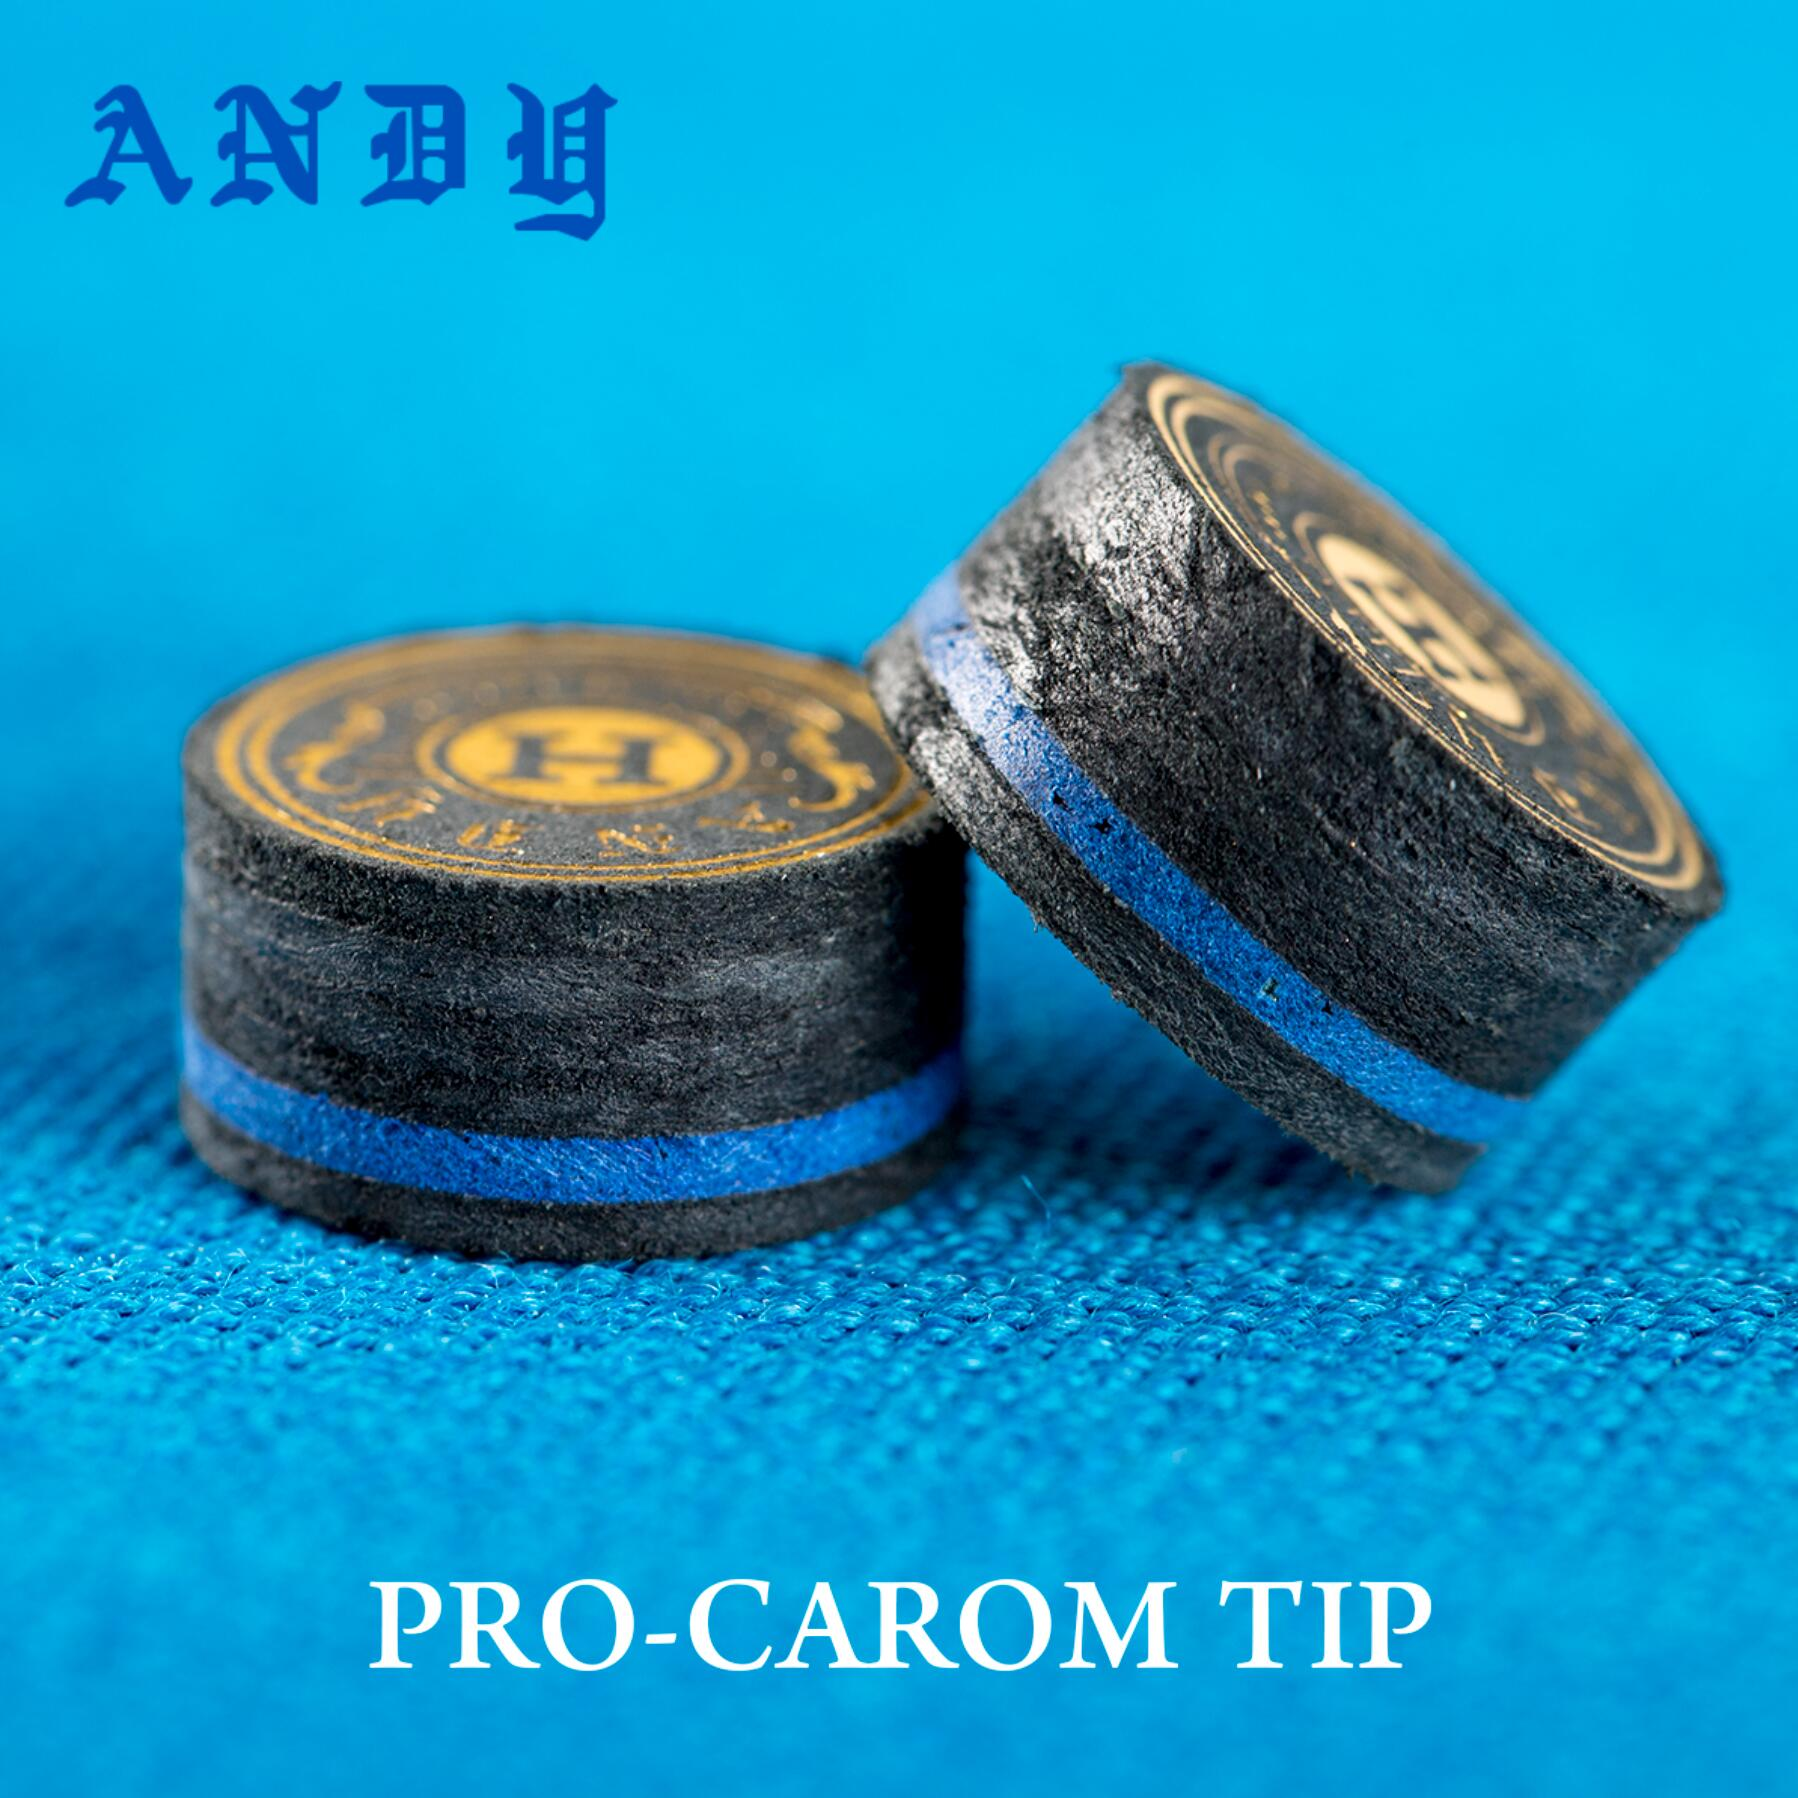 ANDY Carom Cue Tip 14mm Tip 6 Layers 7mm Thinkness Carom Billards Tip Professional Carom Tip Billiard Accessories For Athlete